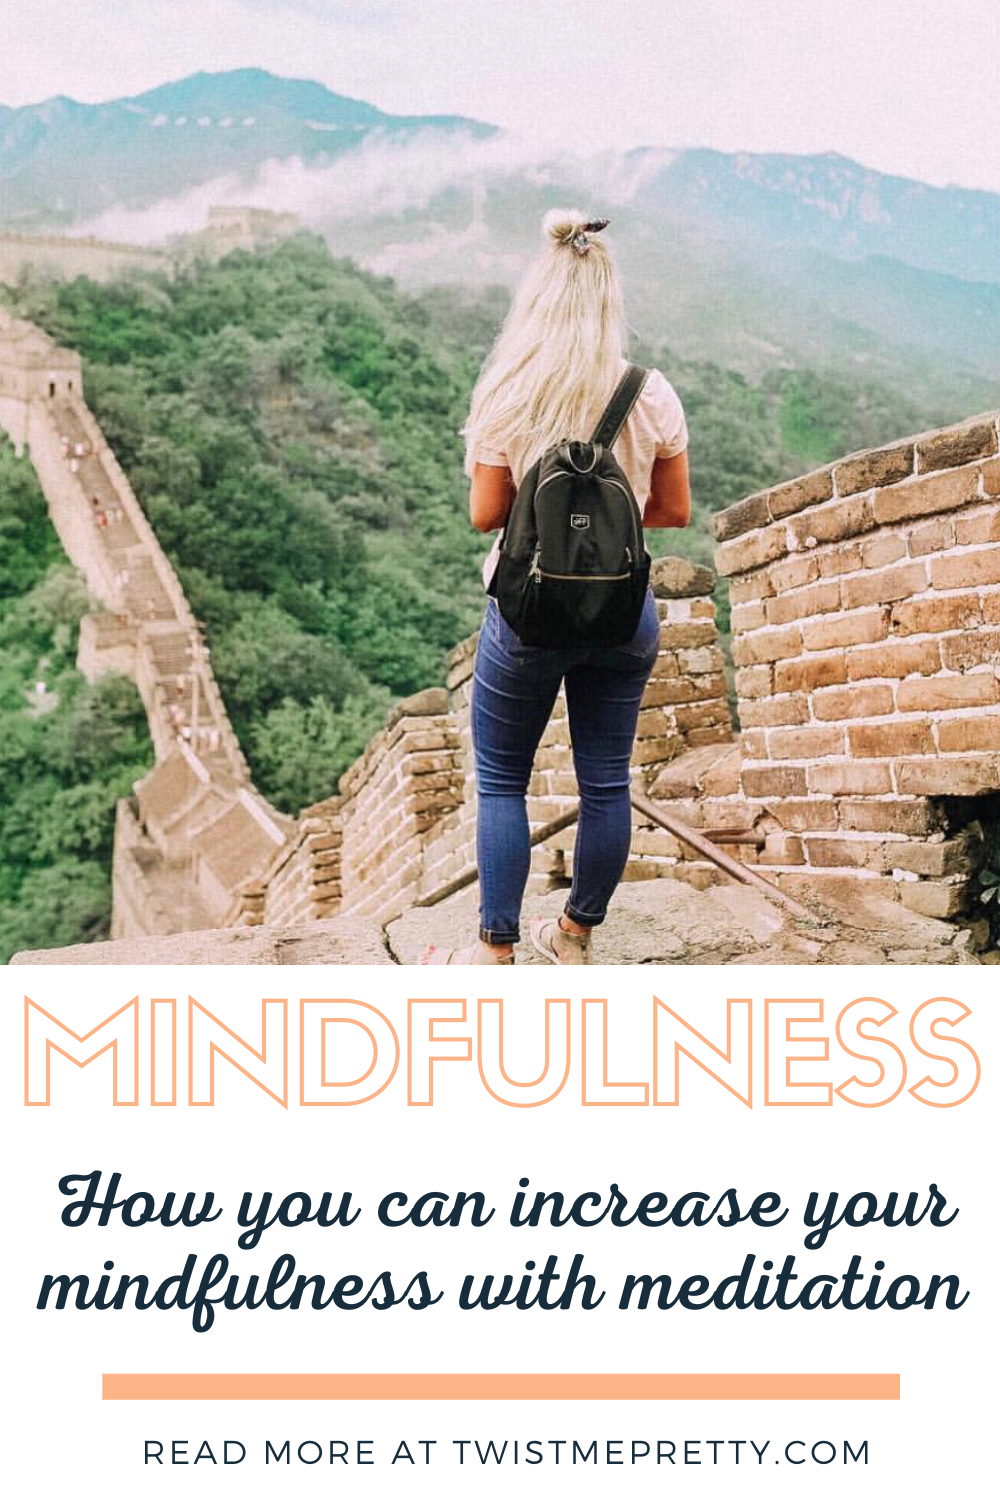 Mindfulness: How you can increase your mindfulness with meditation. www.twistmepretty.com